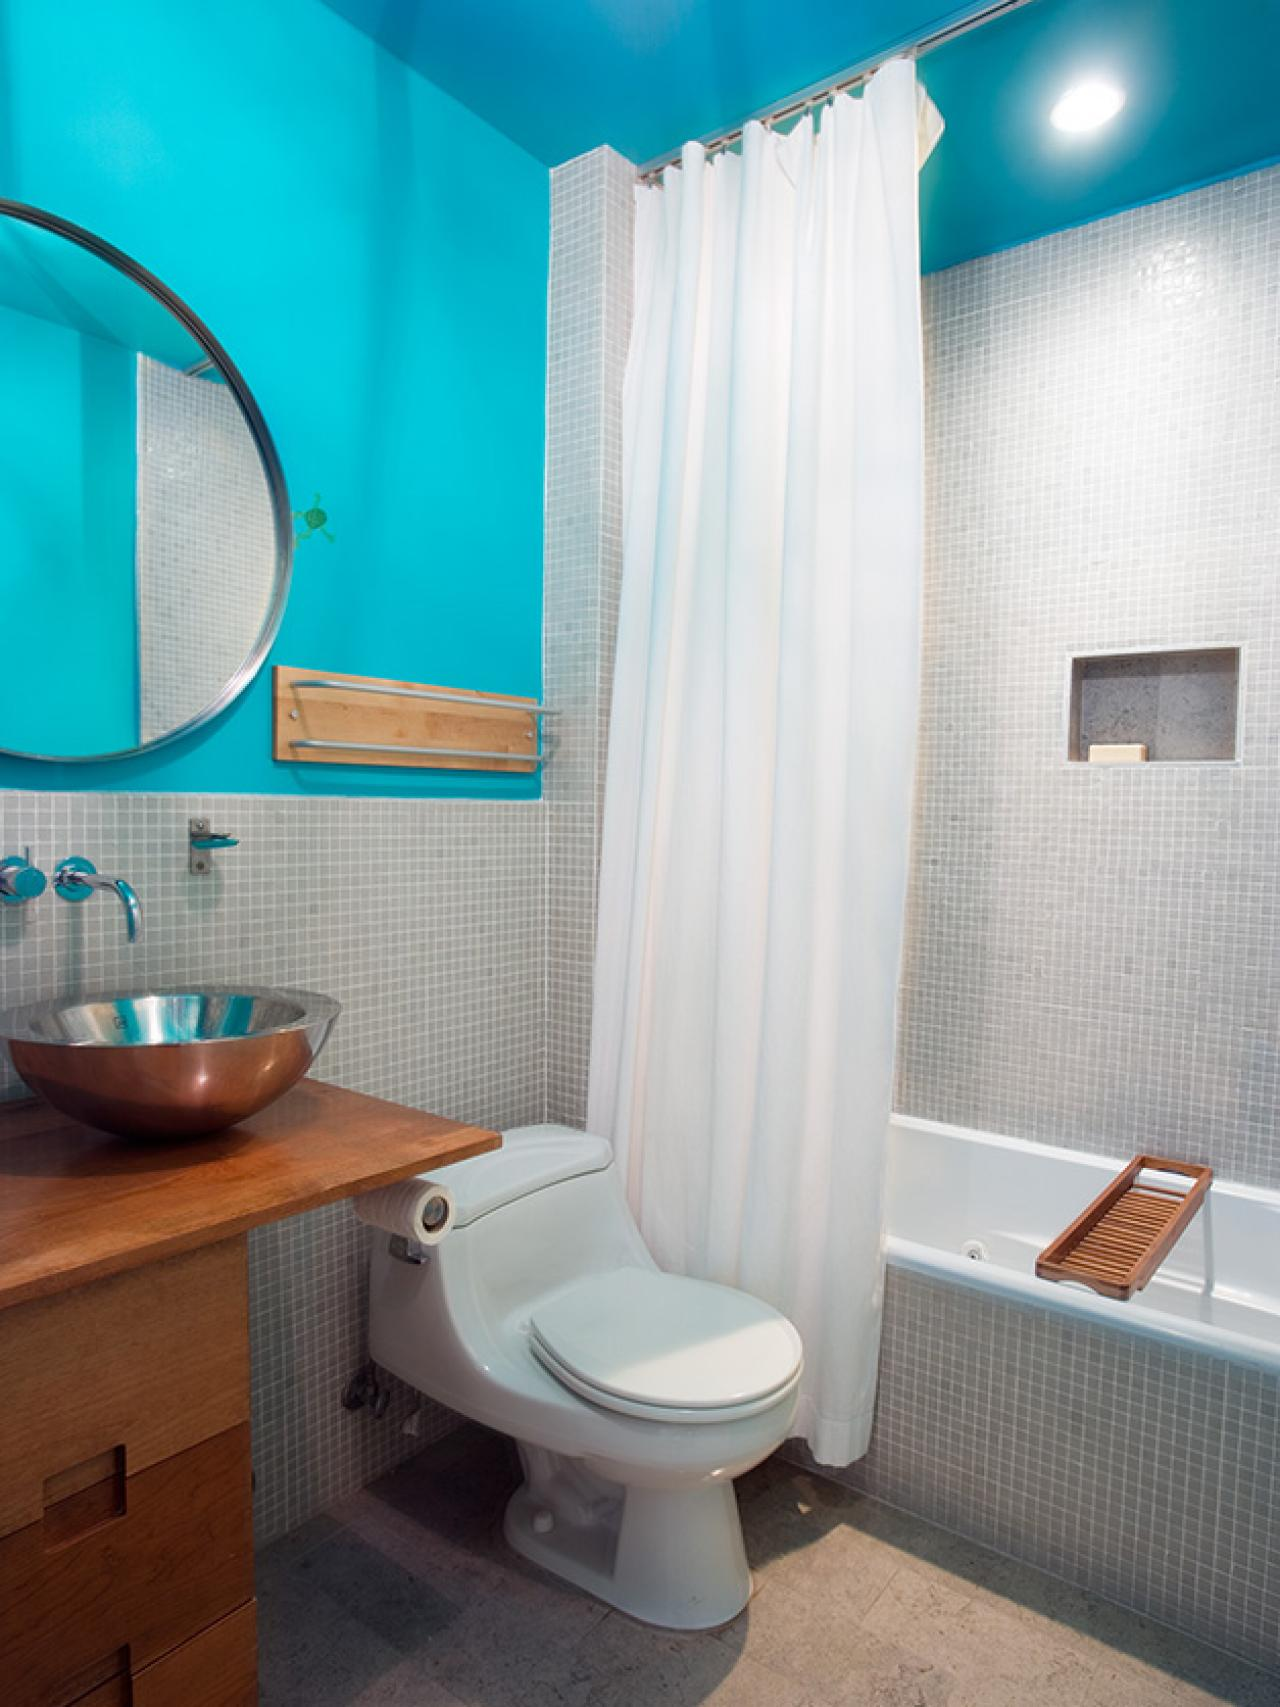 Bathroom Color And Paint Ideas Pictures Tips From HGTV HGTV - Bathroom colour ideas